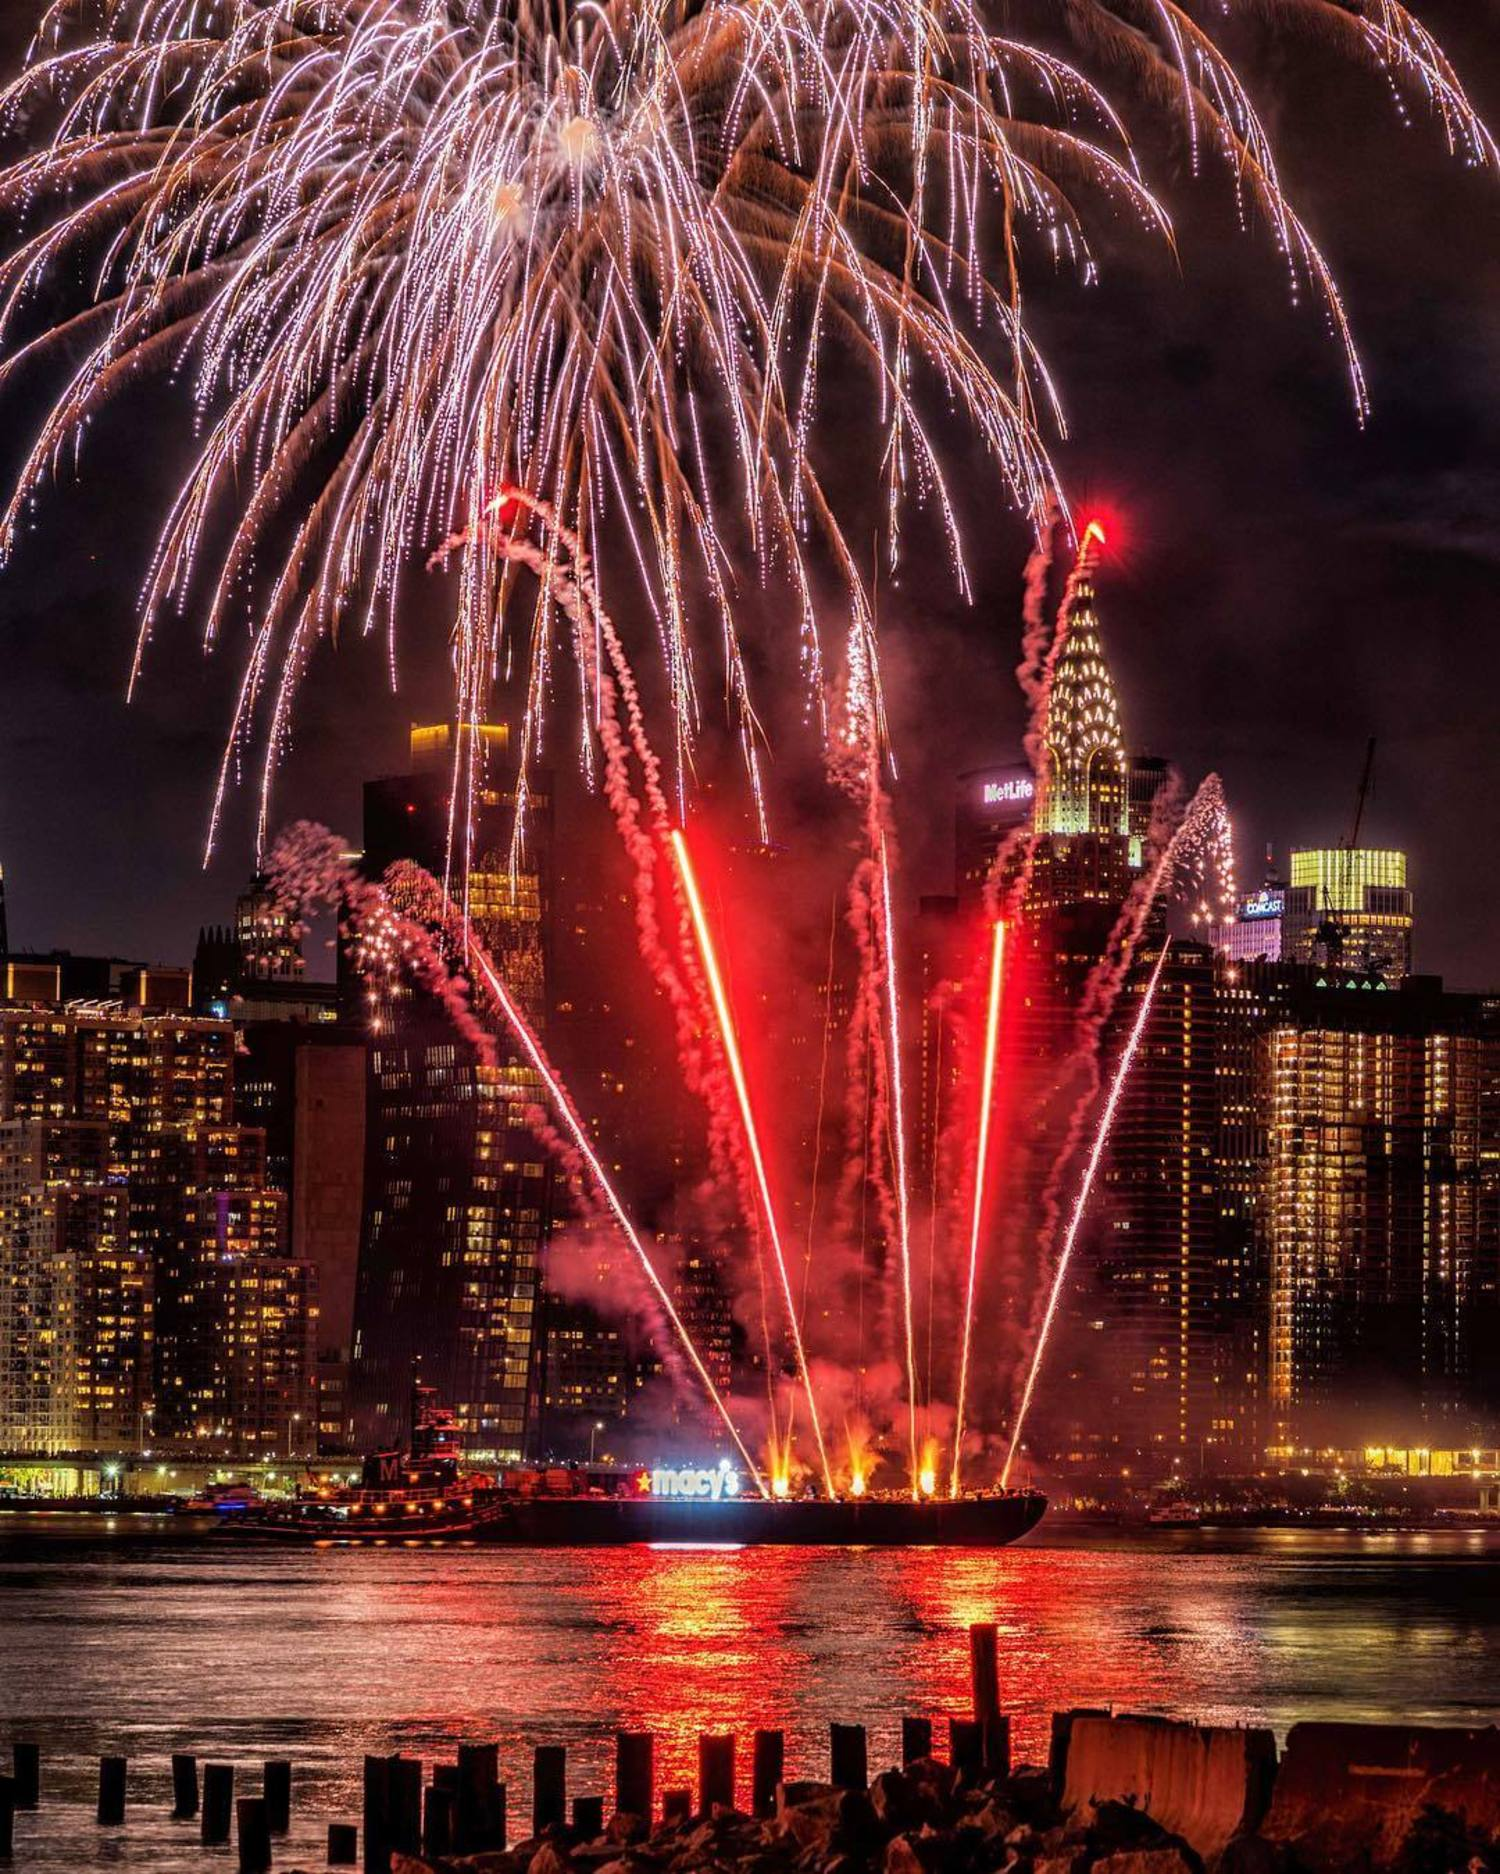 Incredible fireworks over the East River with @papakila.